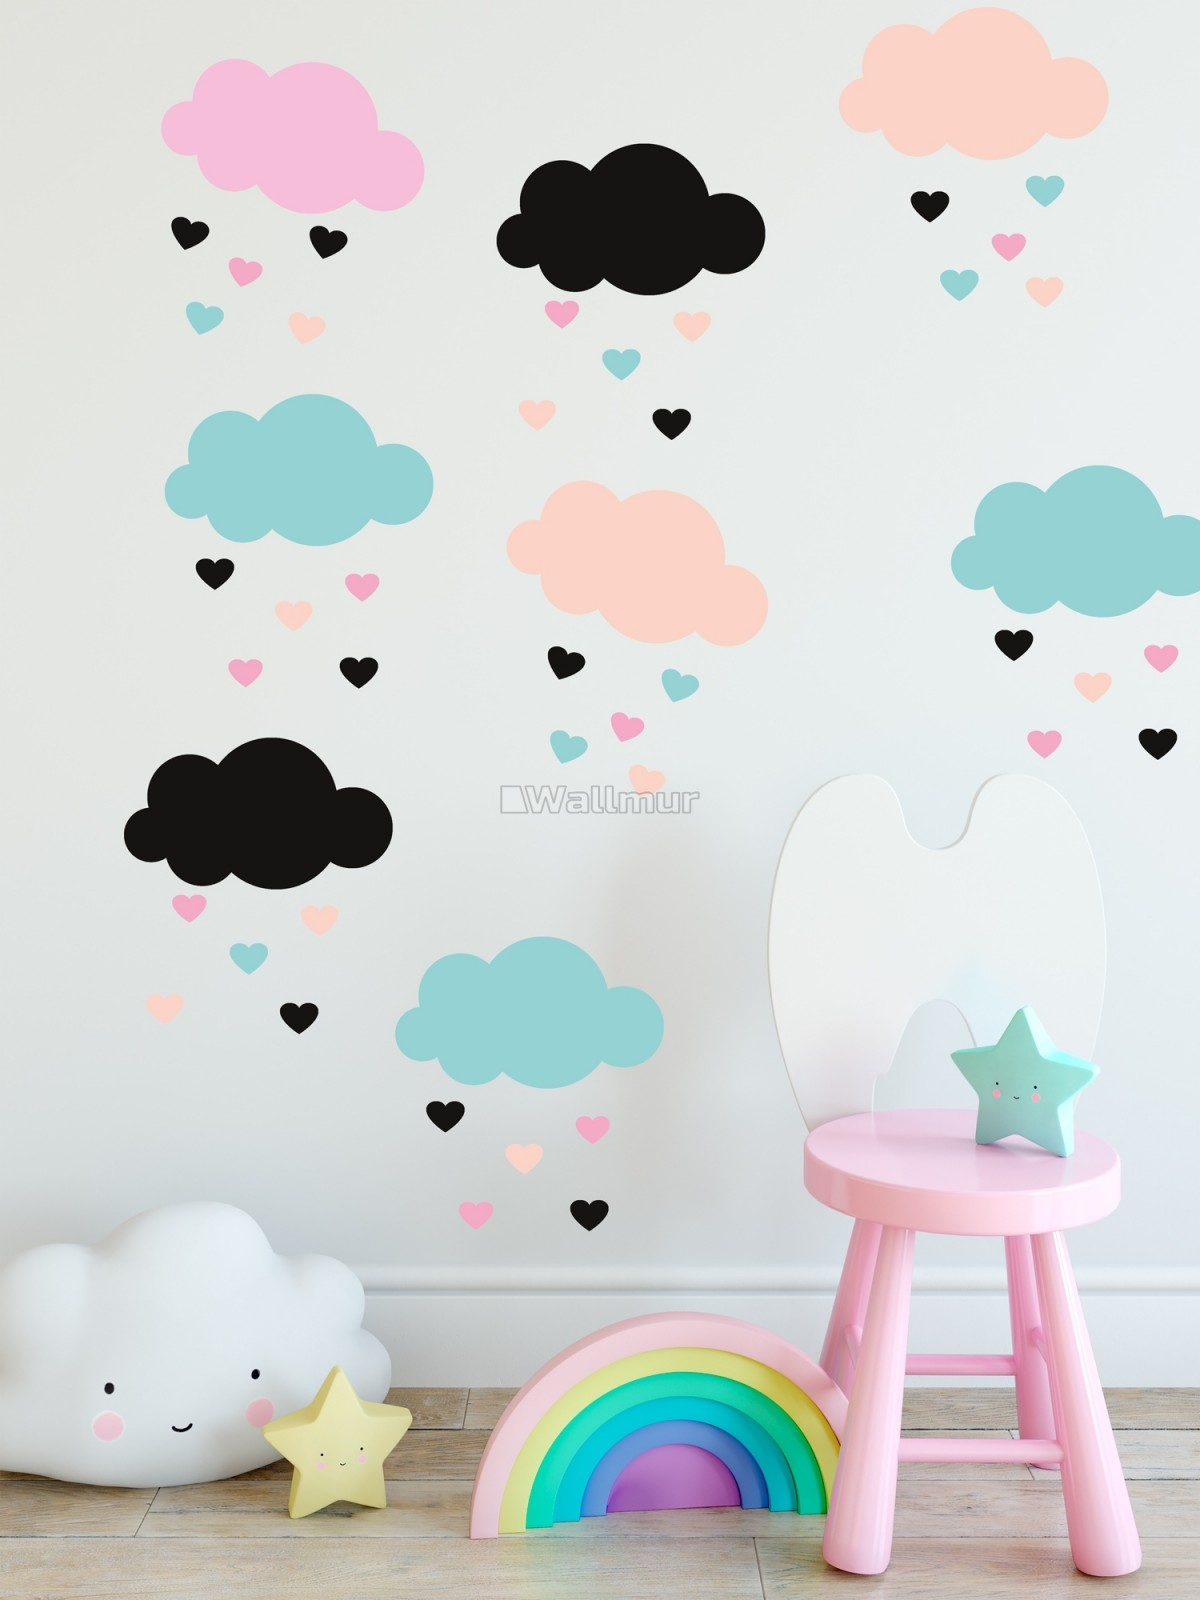 Nursery Colorful Cloud with Little Heart Wall Decal Sticker